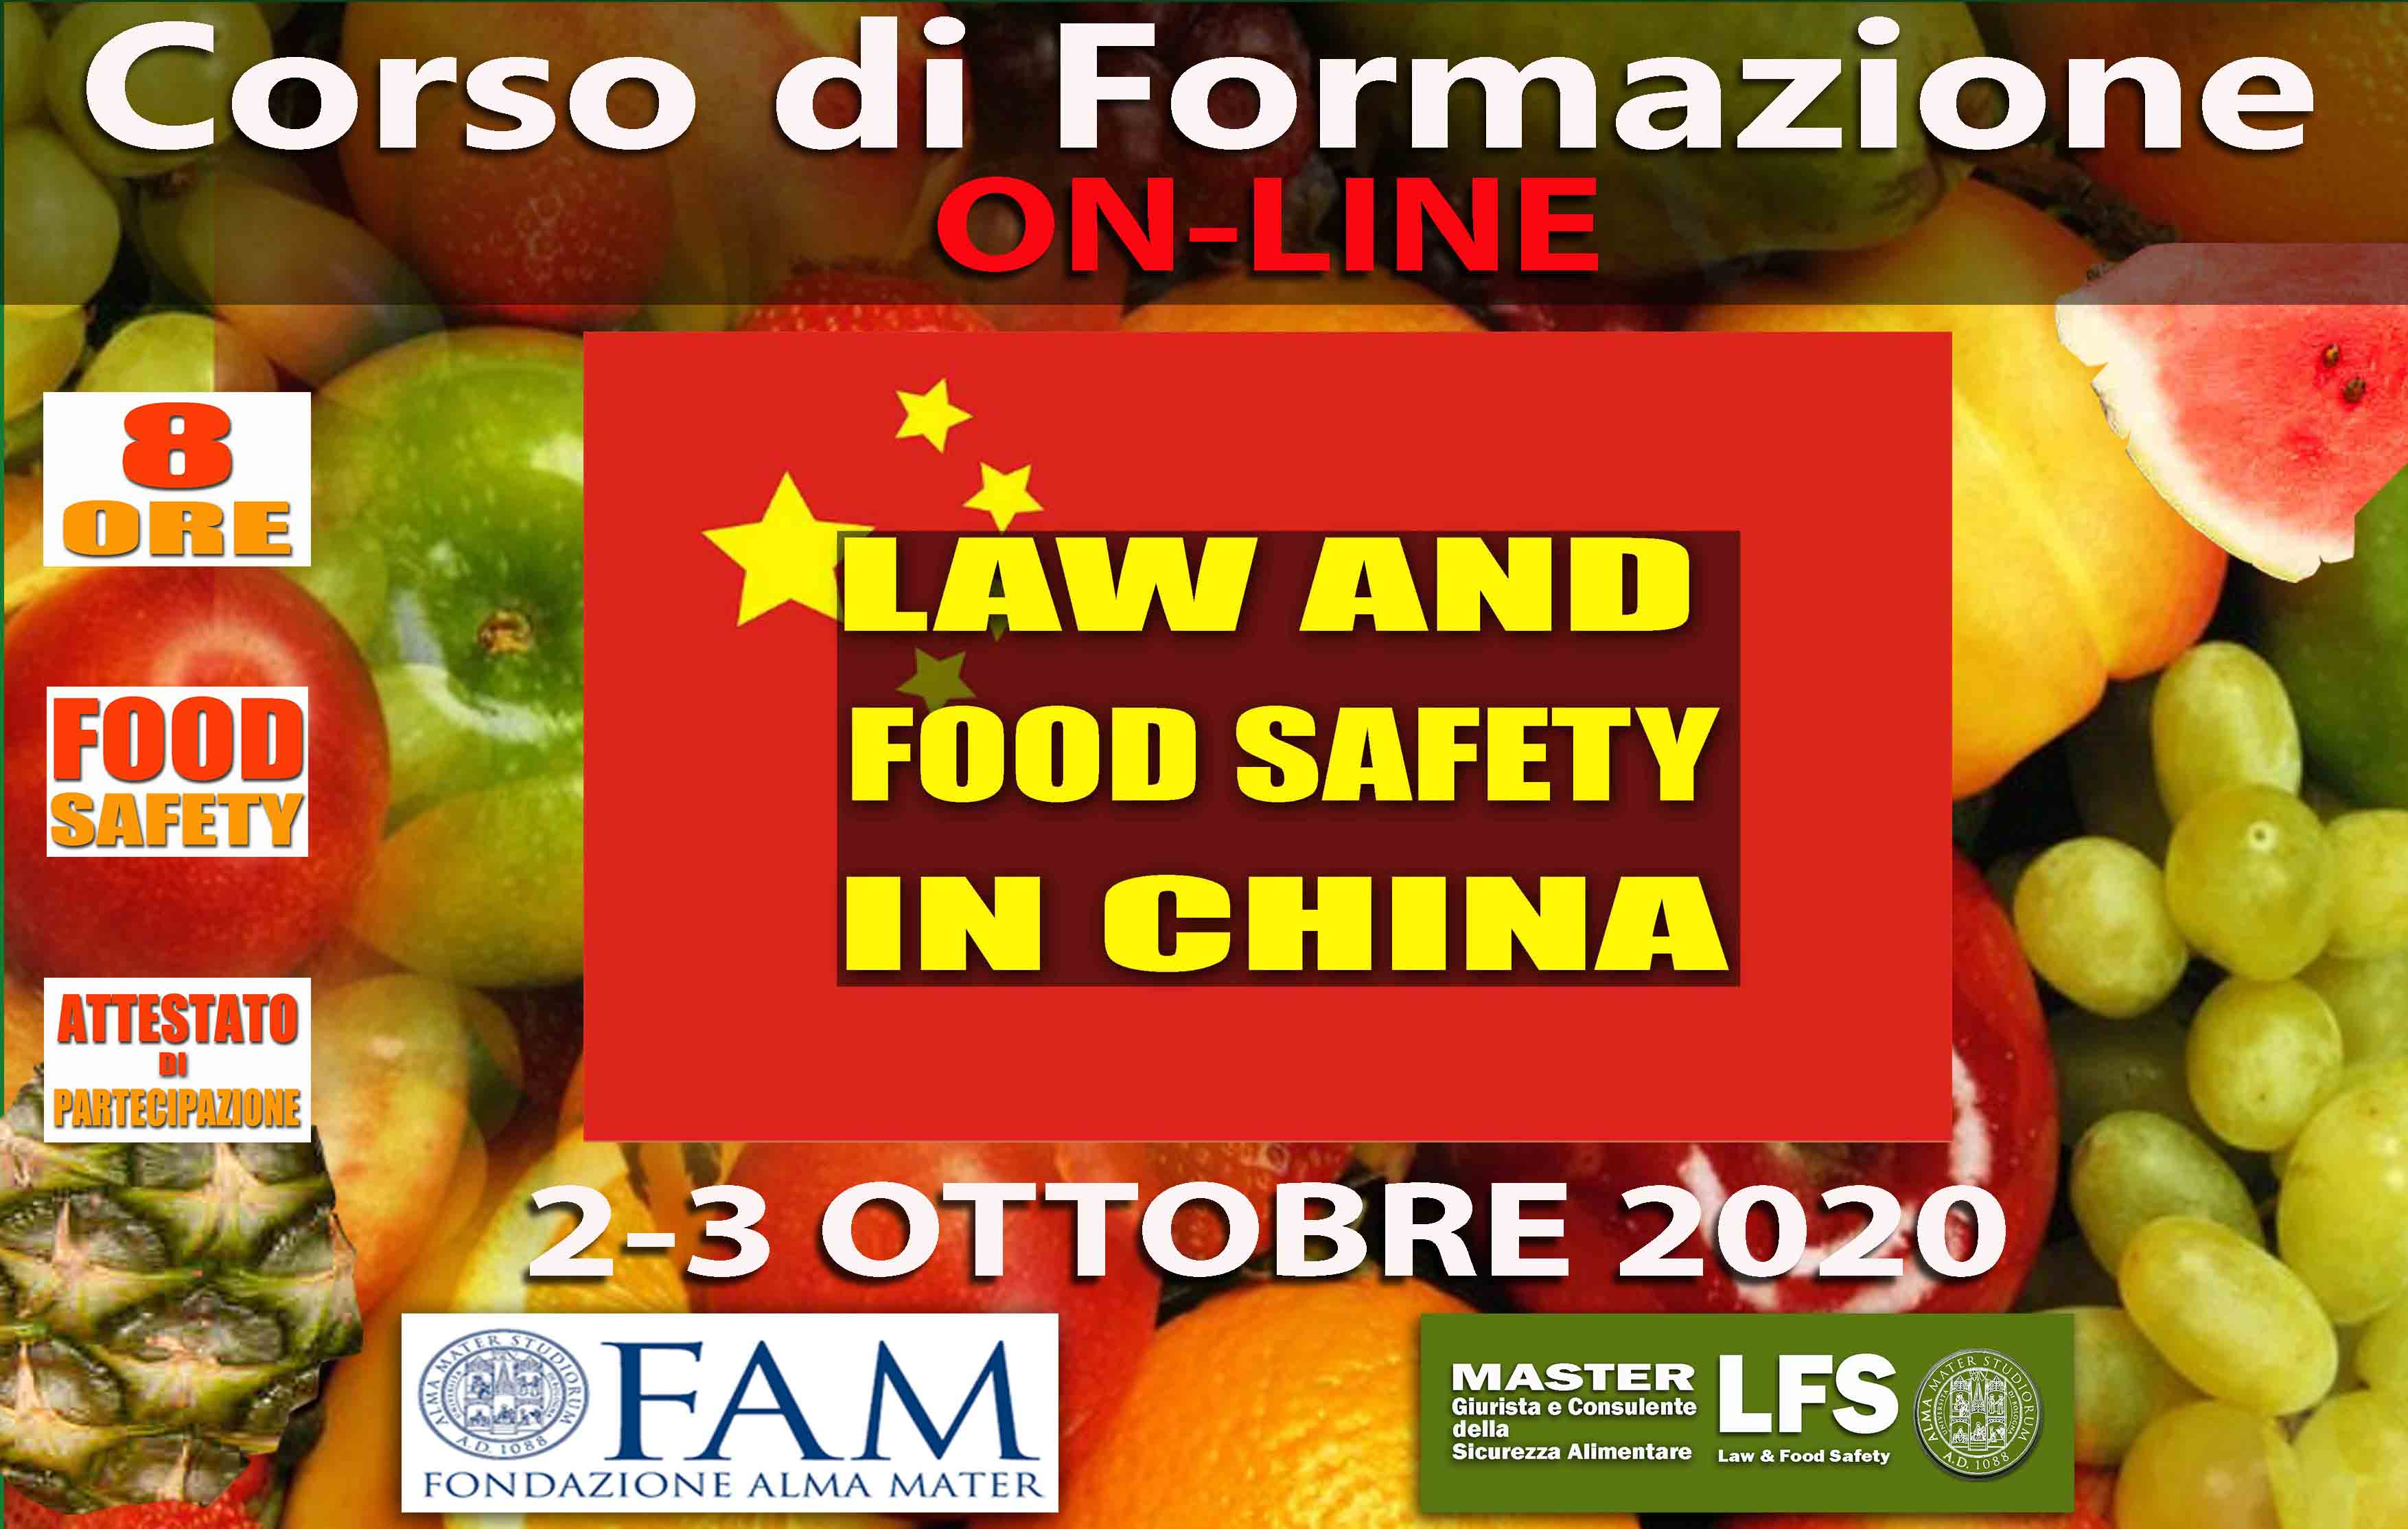 CORSO DI FORMAZIONE LAW AND FOOD SAFETY IN CHINA - 2-3 OTTOBRE 2020